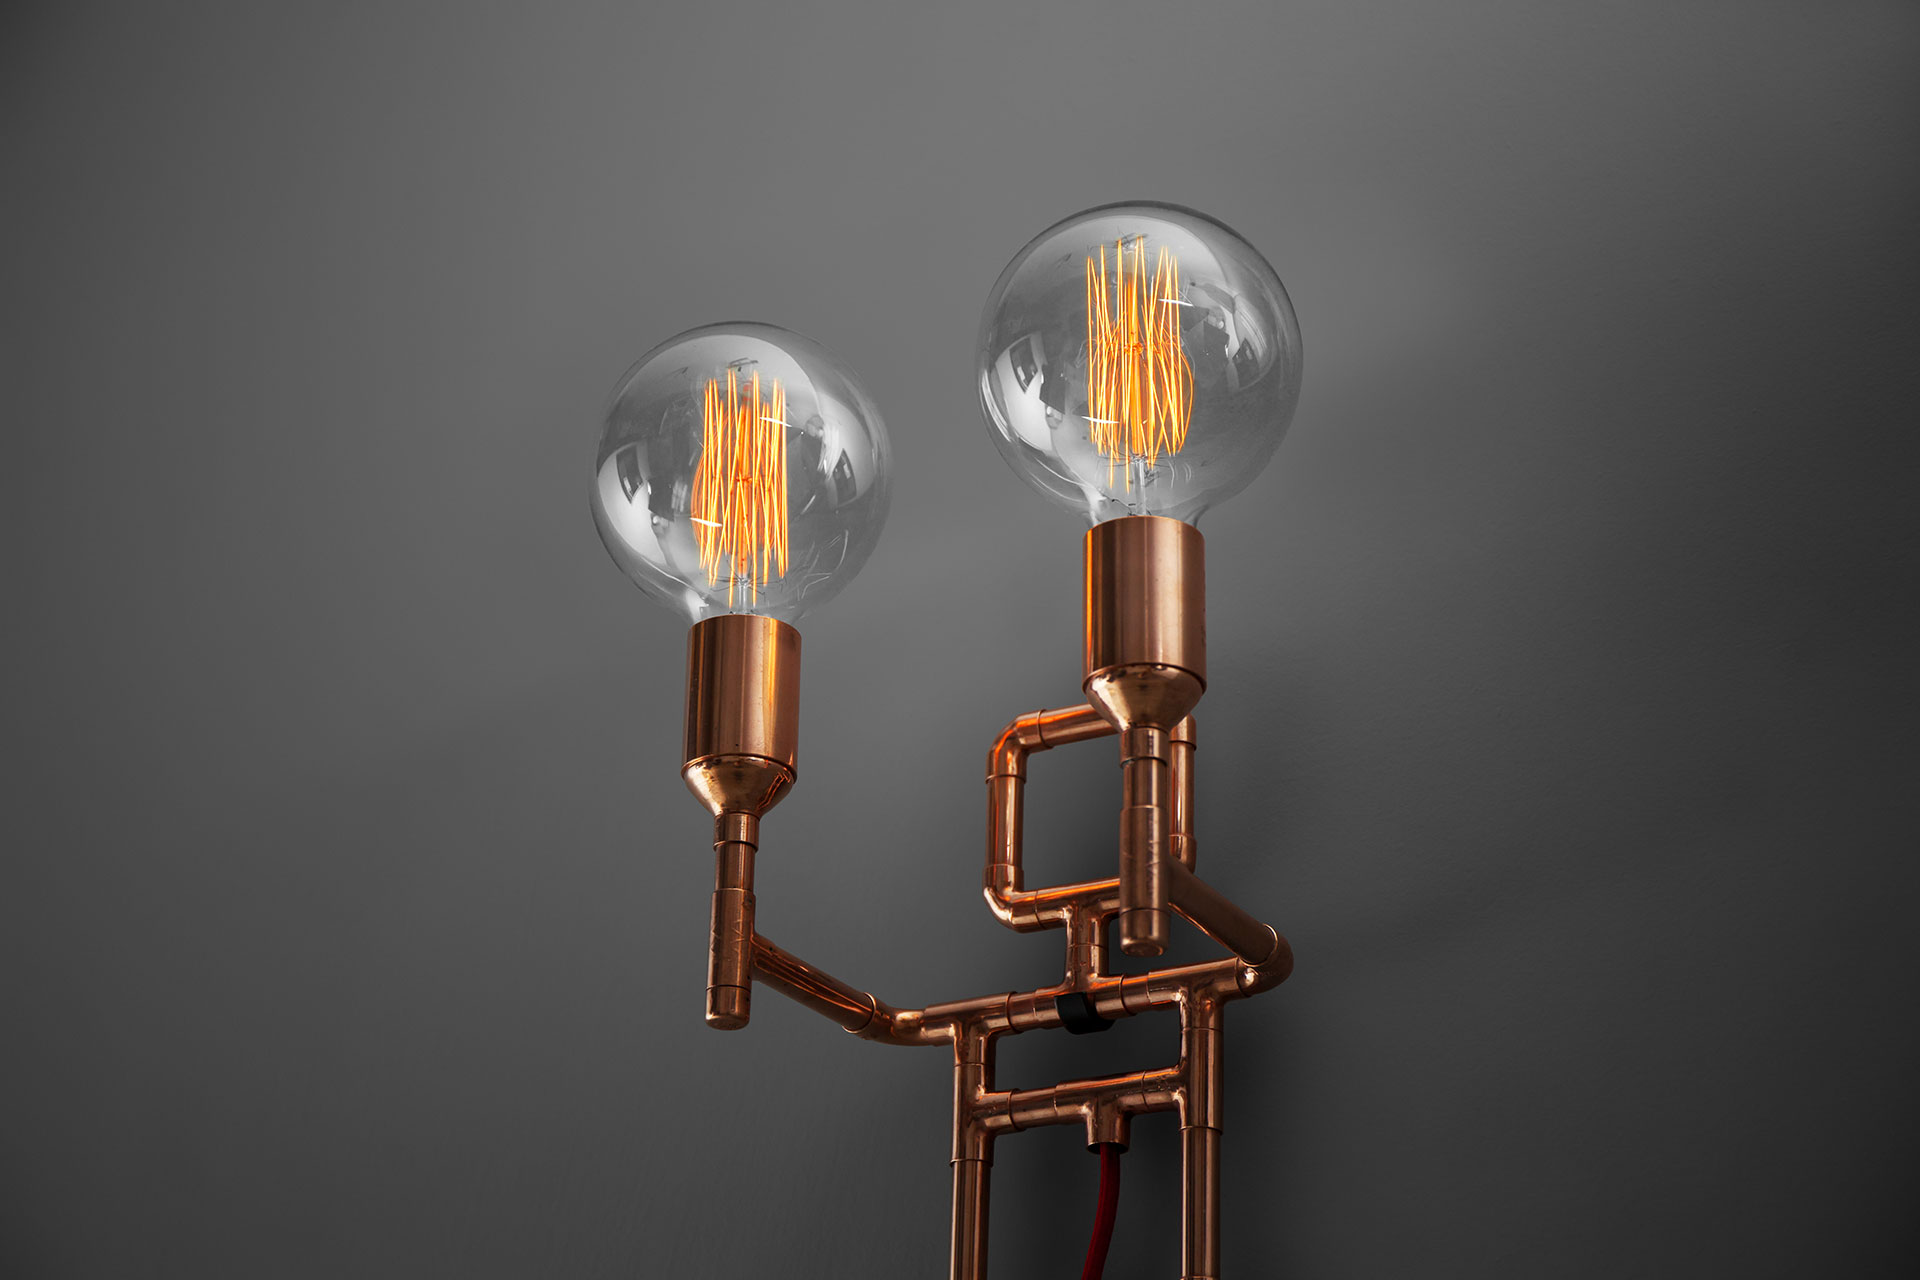 Two lights copper sconce with retro Edison bulbs